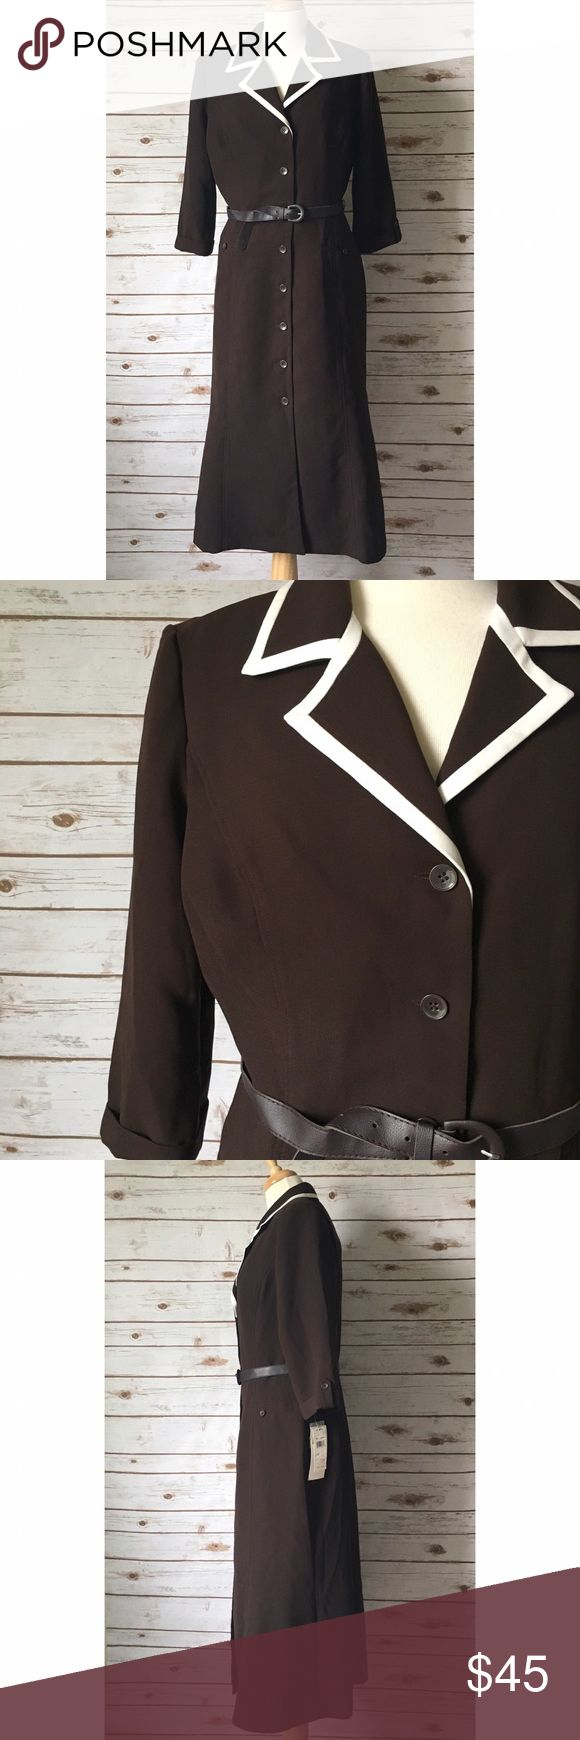 "Studio One Brown Button Down Suit Dress Classy brown button down dress by Studio 1. ▪️48"" long ▪️17"" shoulder to shoulder ▪️22"" pit to pit ▪️18"" sleeves length ▪️18"" waist laid flat ▪️23"" hip laid flat ▪️Shoulder pads ▪️New; never worn  🚭 Smoke-free home 📬 Ships by next day 💲 Price negotiable  🔁 Open to trades  💟Happy Poshing!💟 Studio One Dresses Midi"